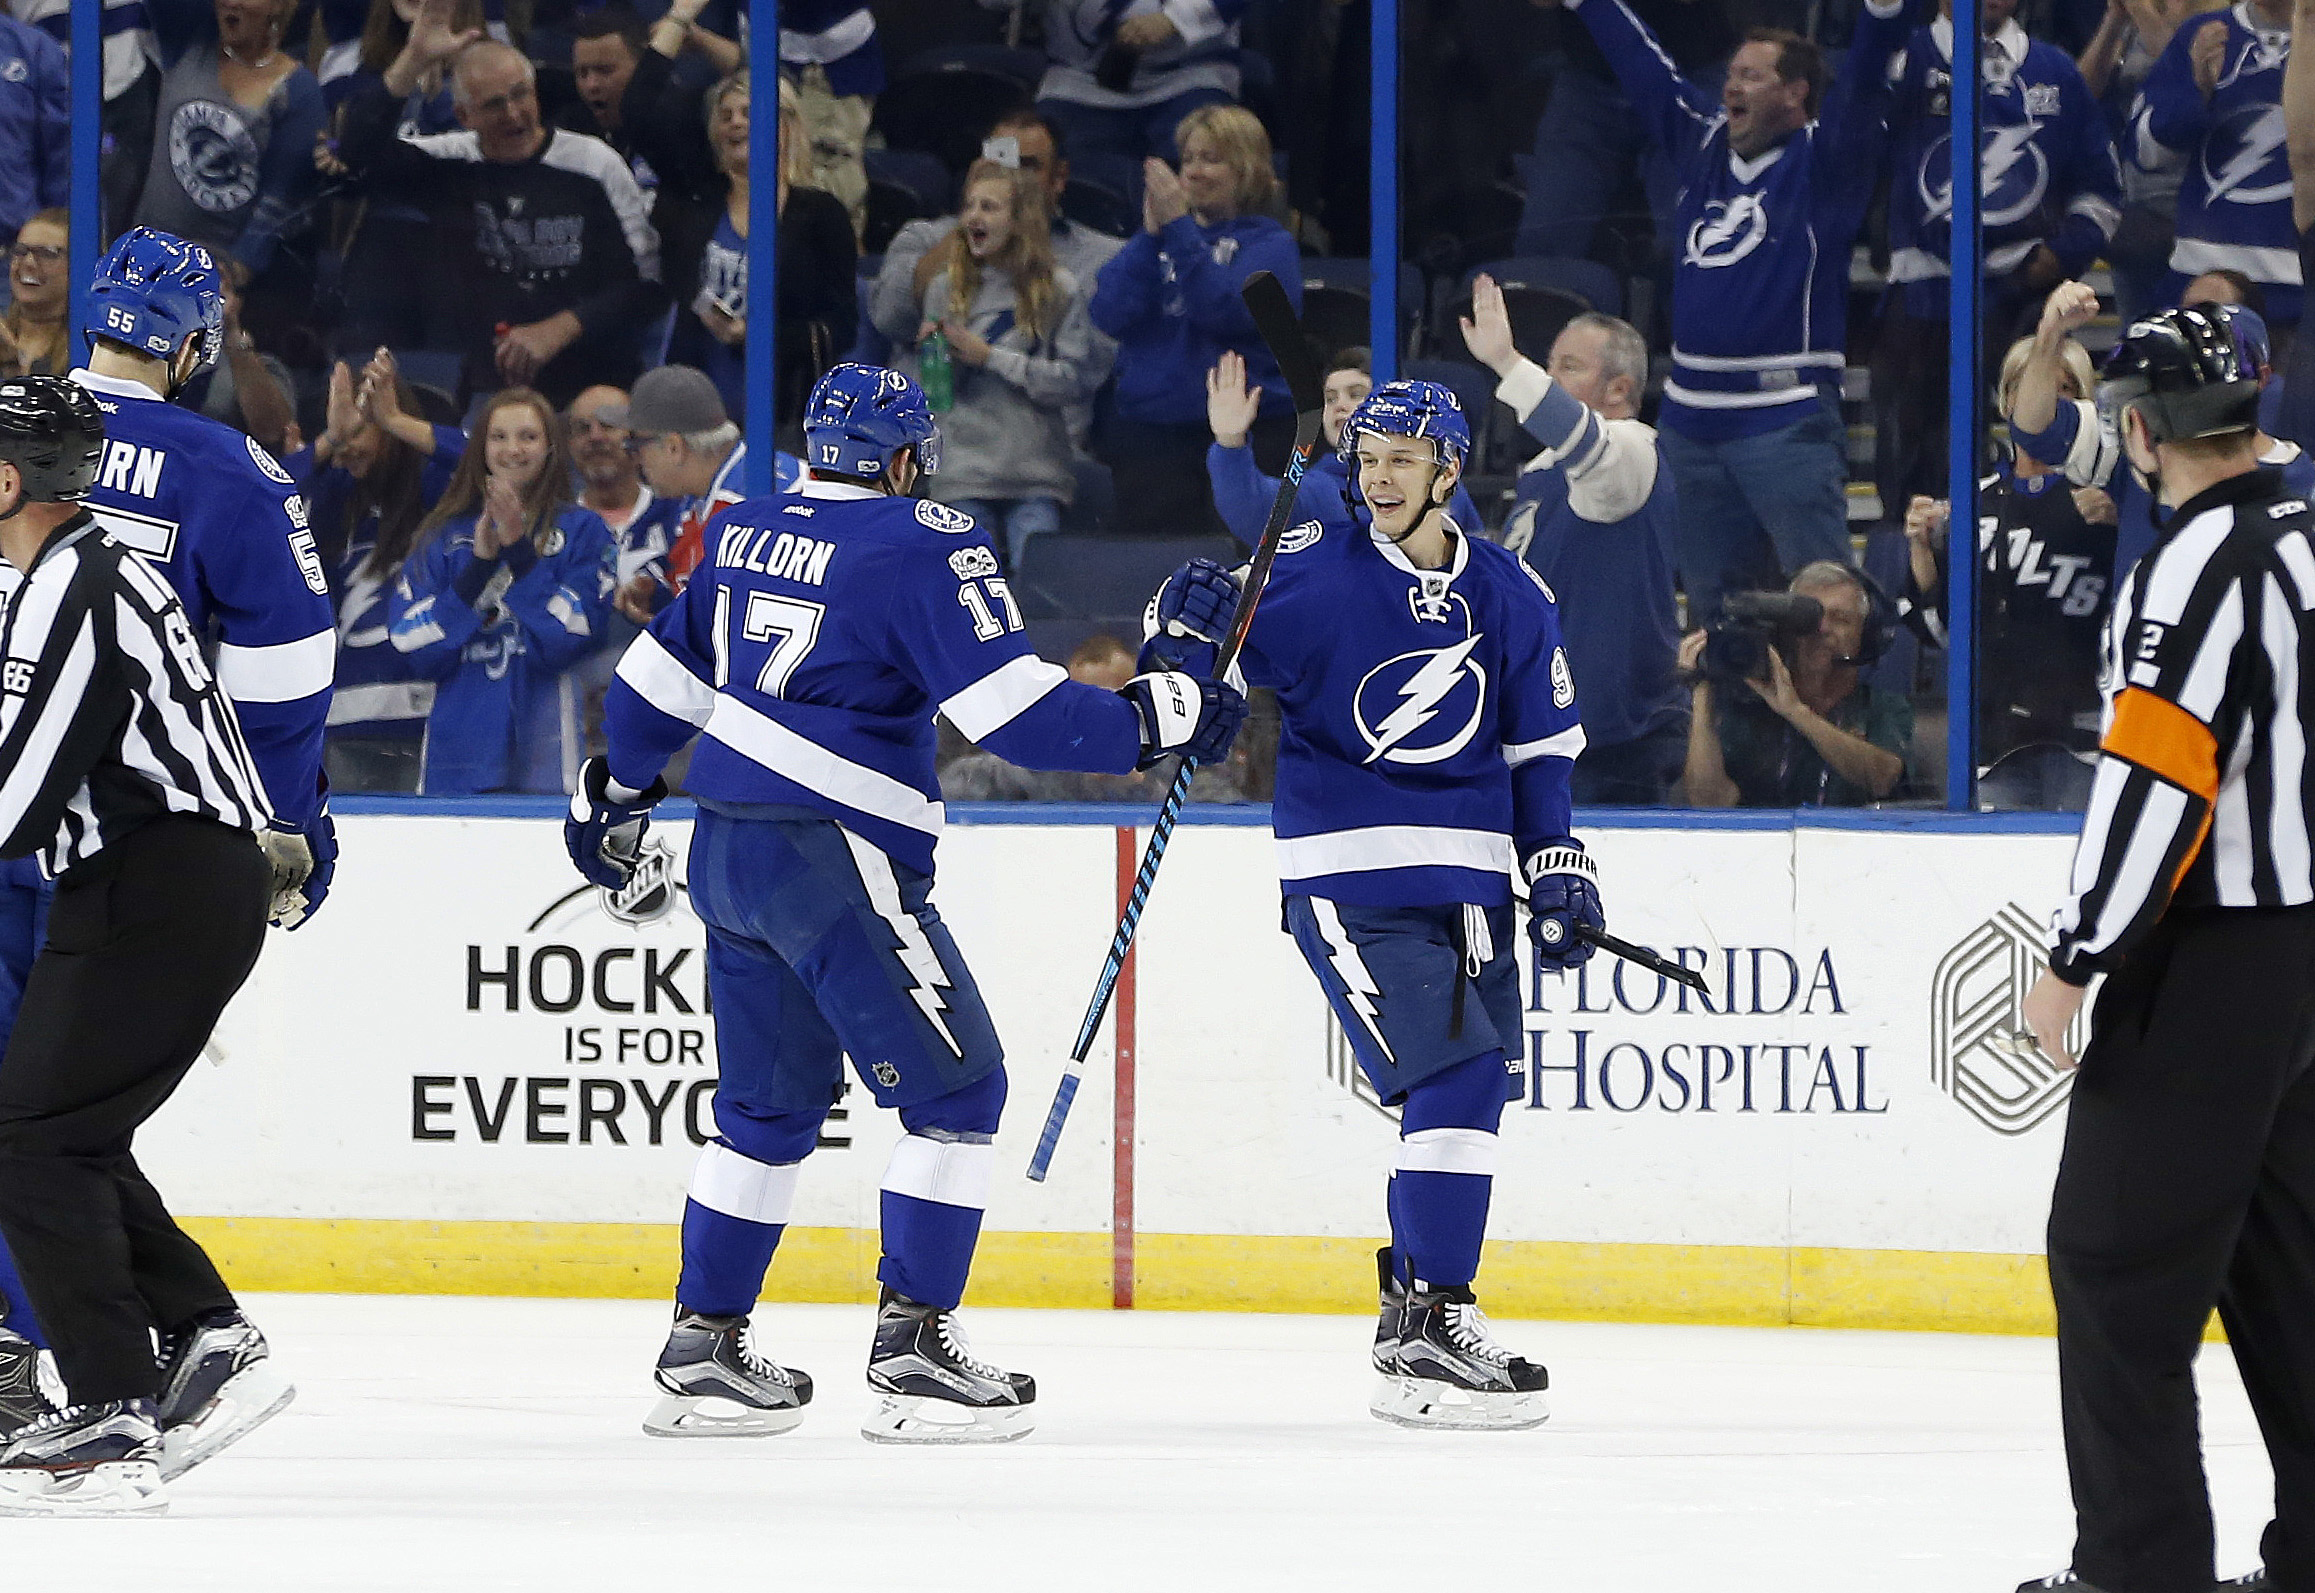 9896174-nhl-calgary-flames-at-tampa-bay-lightning